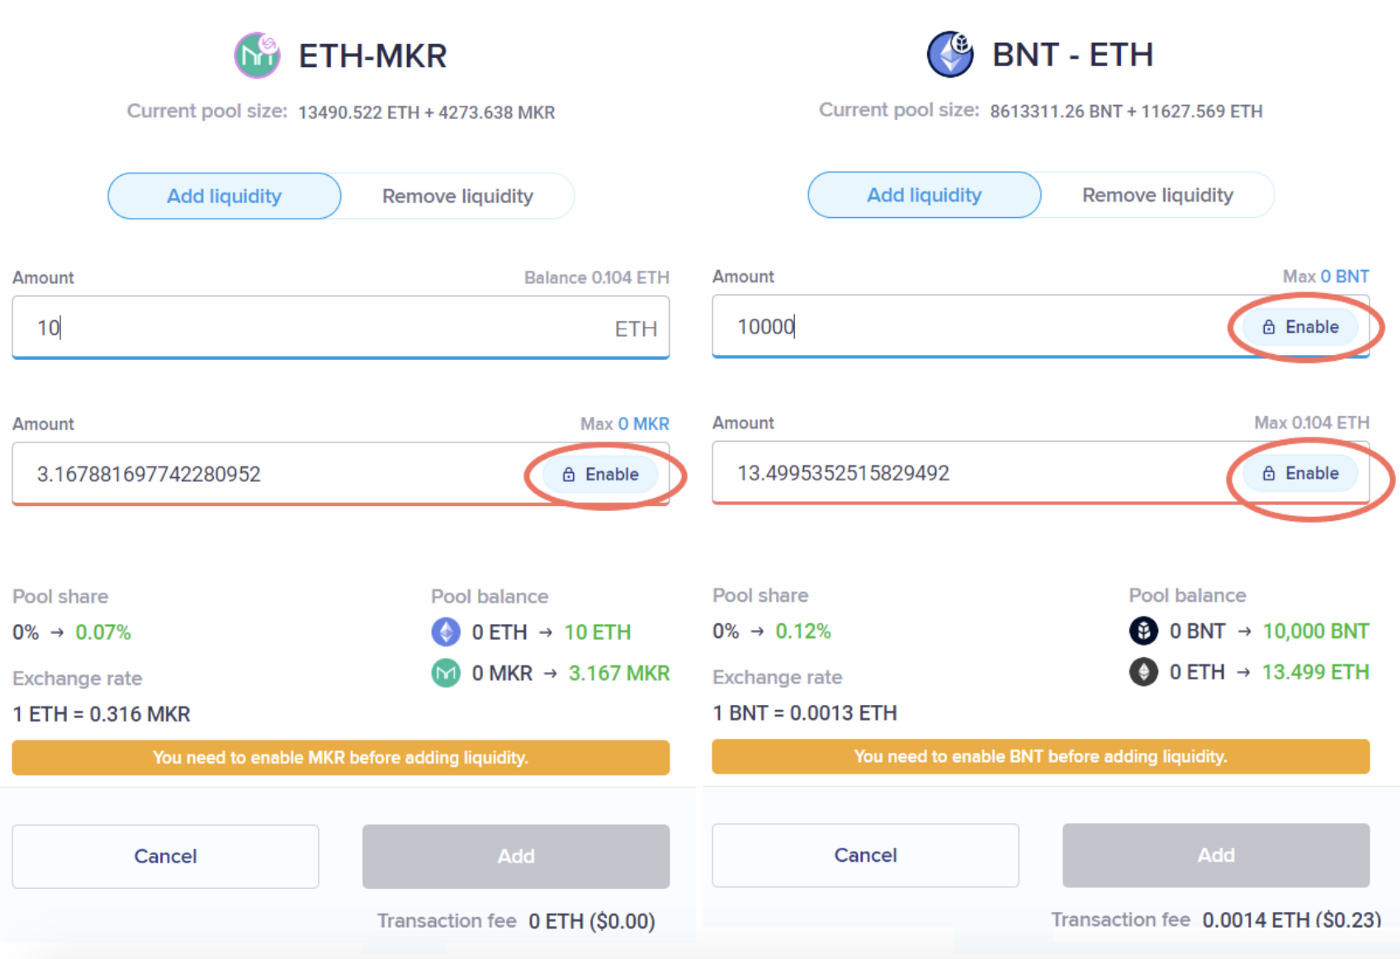 ETH-MKR and BNT-ETH liquidity pools